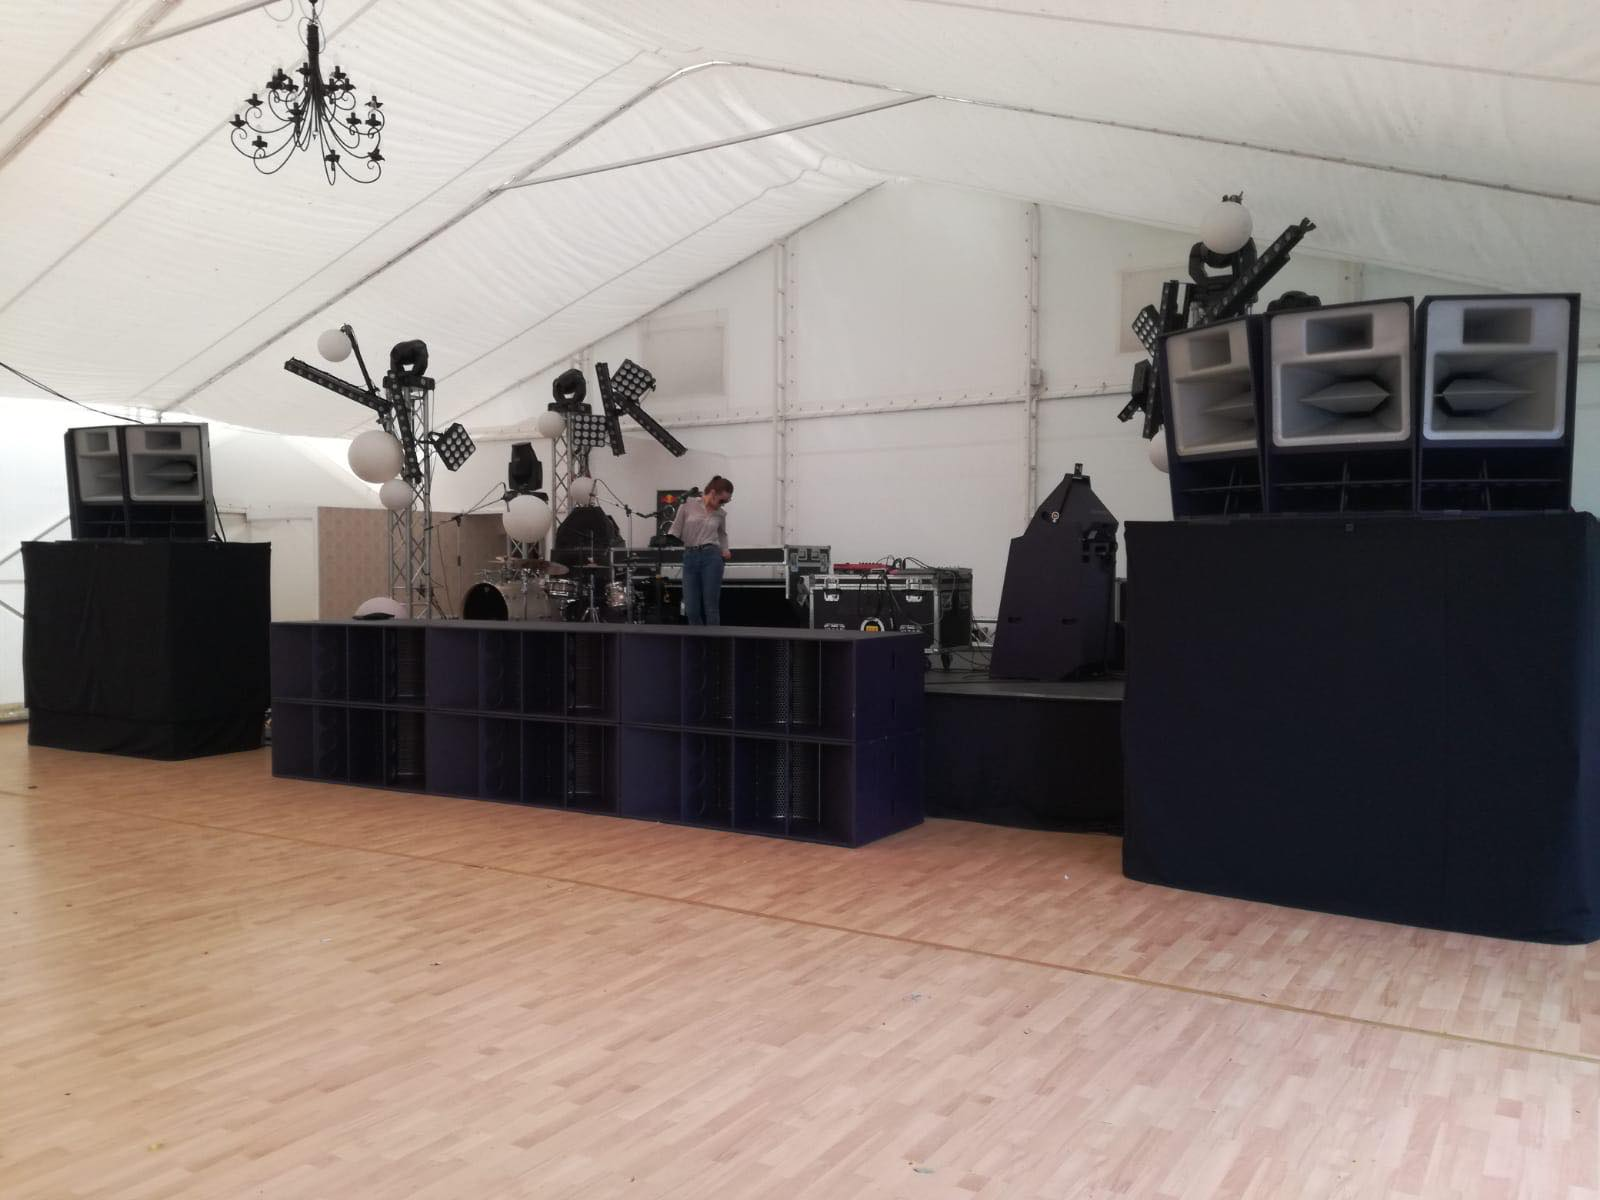 Summer Well After Party Tent 2018@ Domeniul Stirbei Setup Sunet Scena Sunet Lumini Concert Live Dj  13 Music Gear (14)